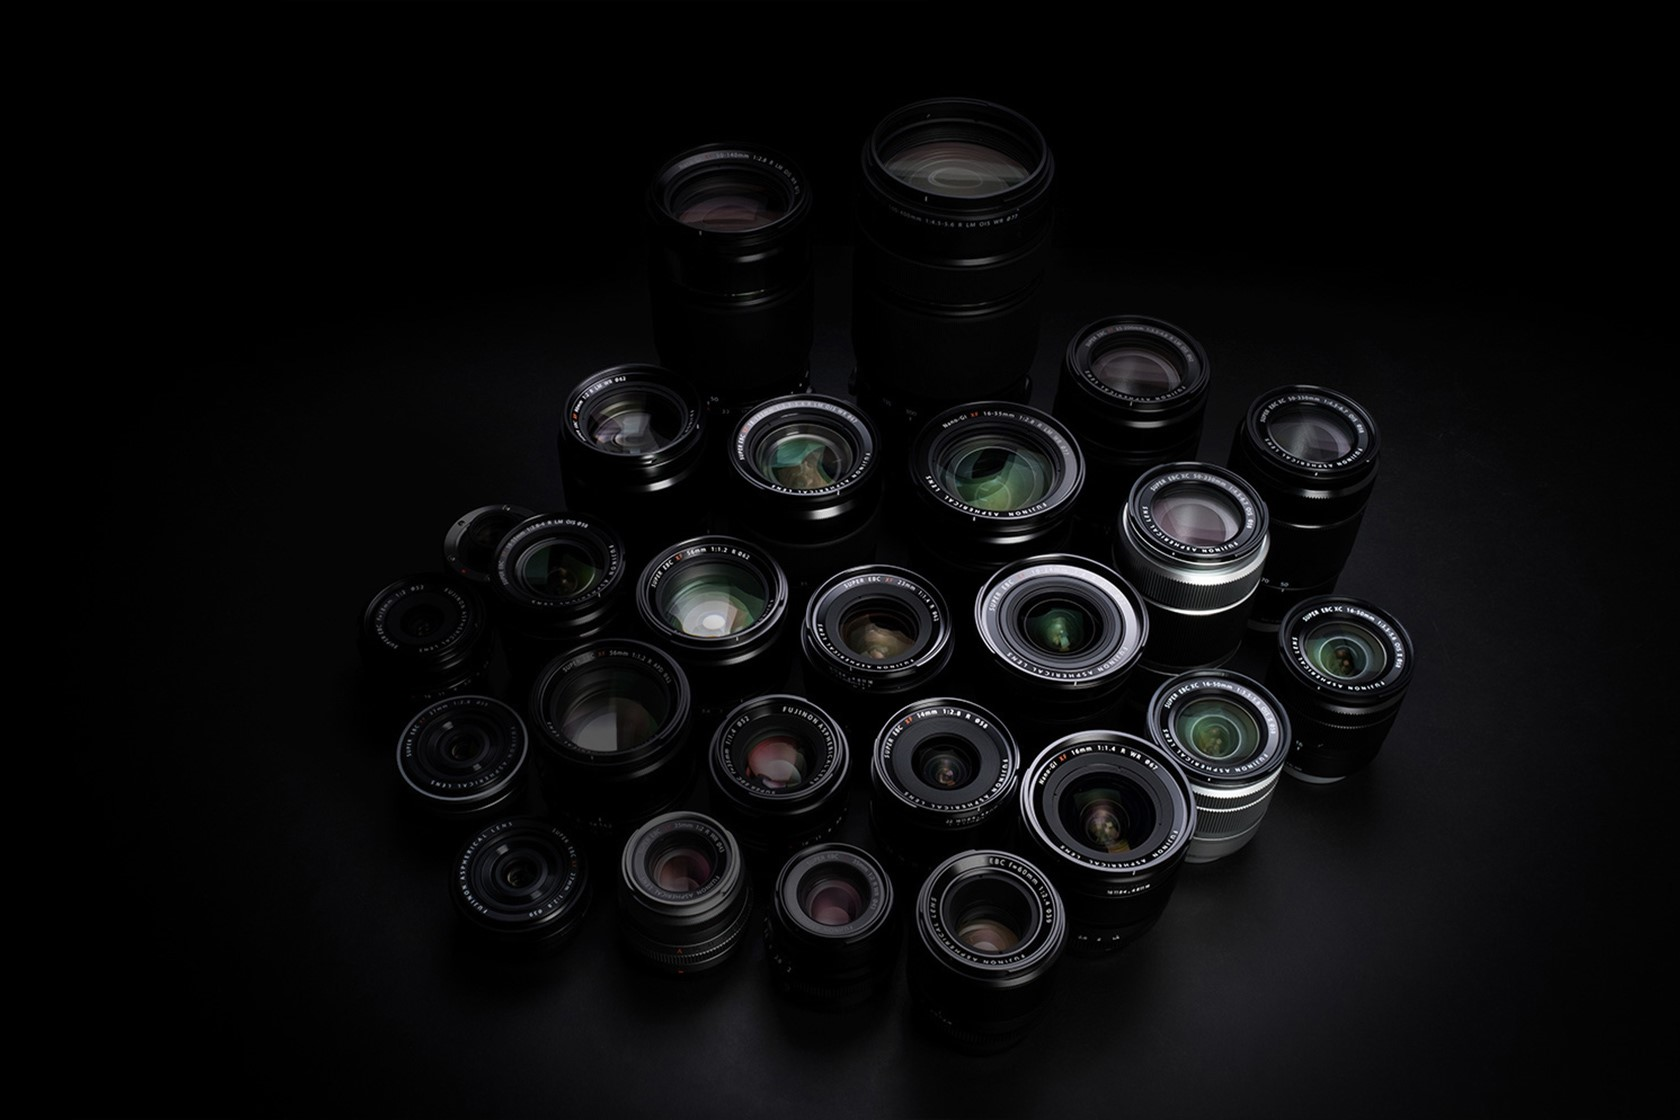 [photo] An assorted collection of Fujinon lenses